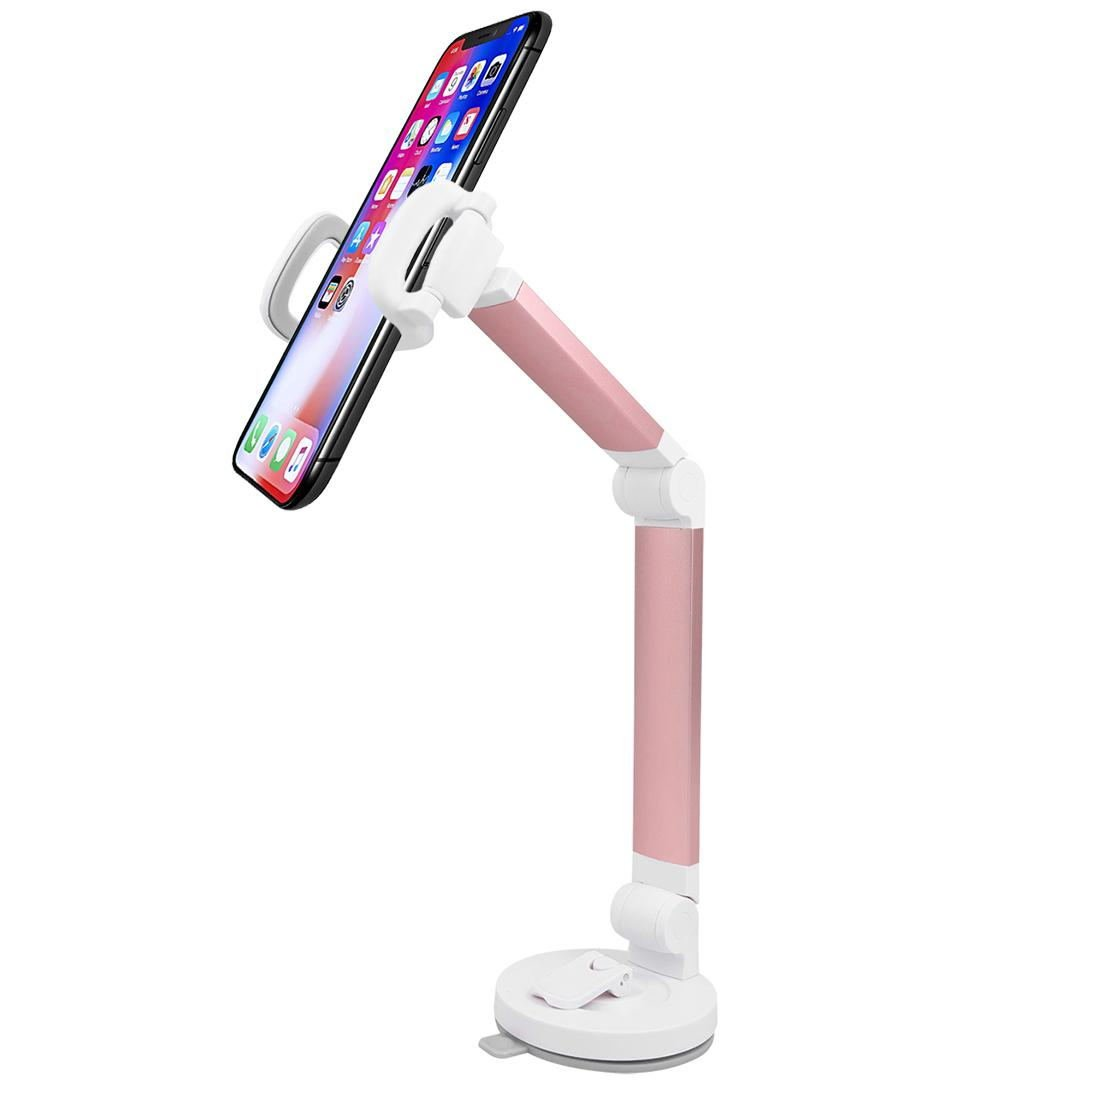 Universal Phone Holder Phone Stand Lazy Bracket Suction Cup Holder Rose Red